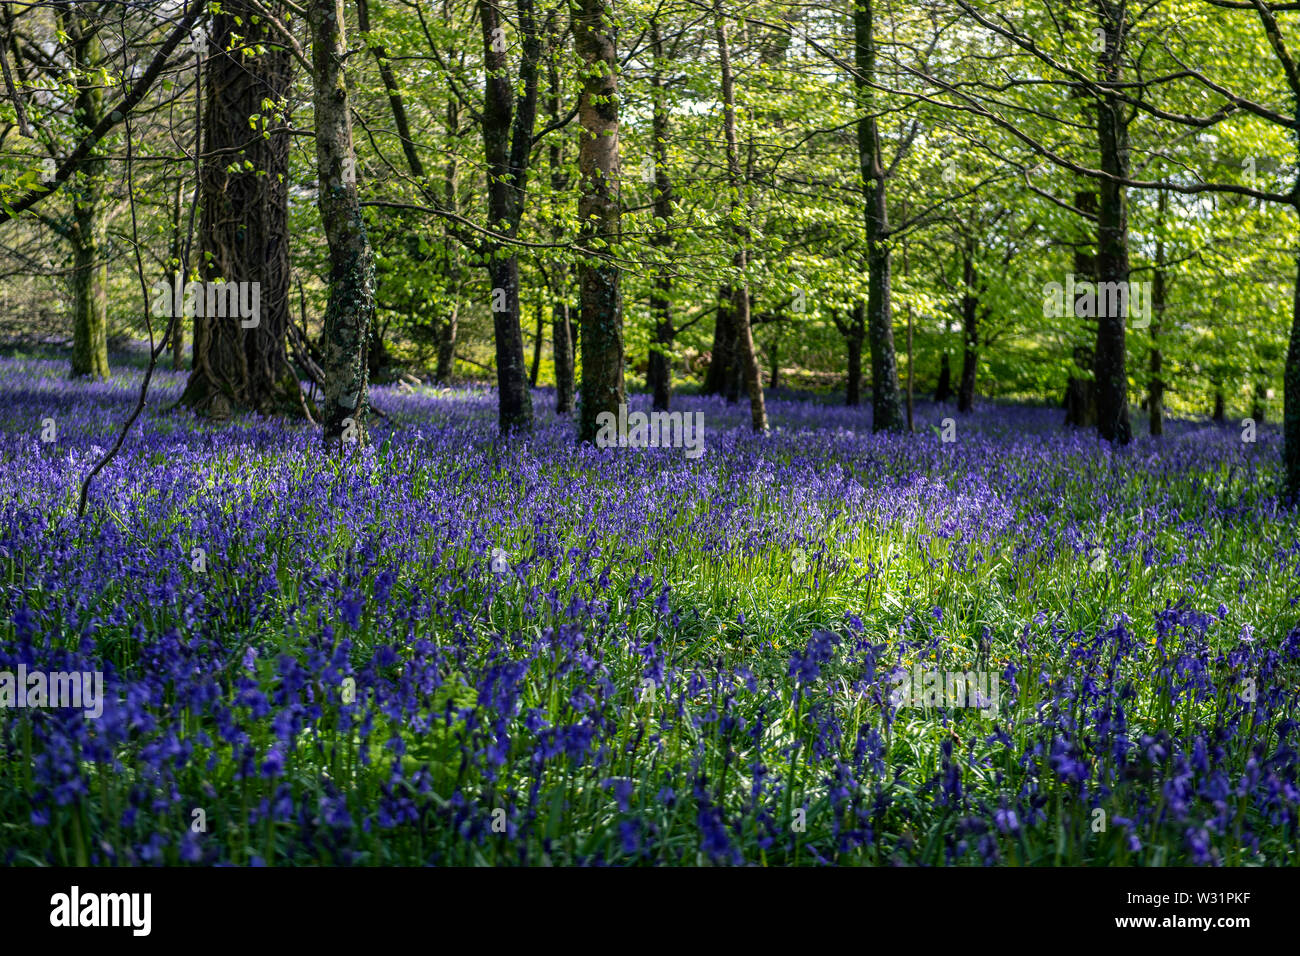 Bluebell woods in Cornwall, England, UK Stock Photo